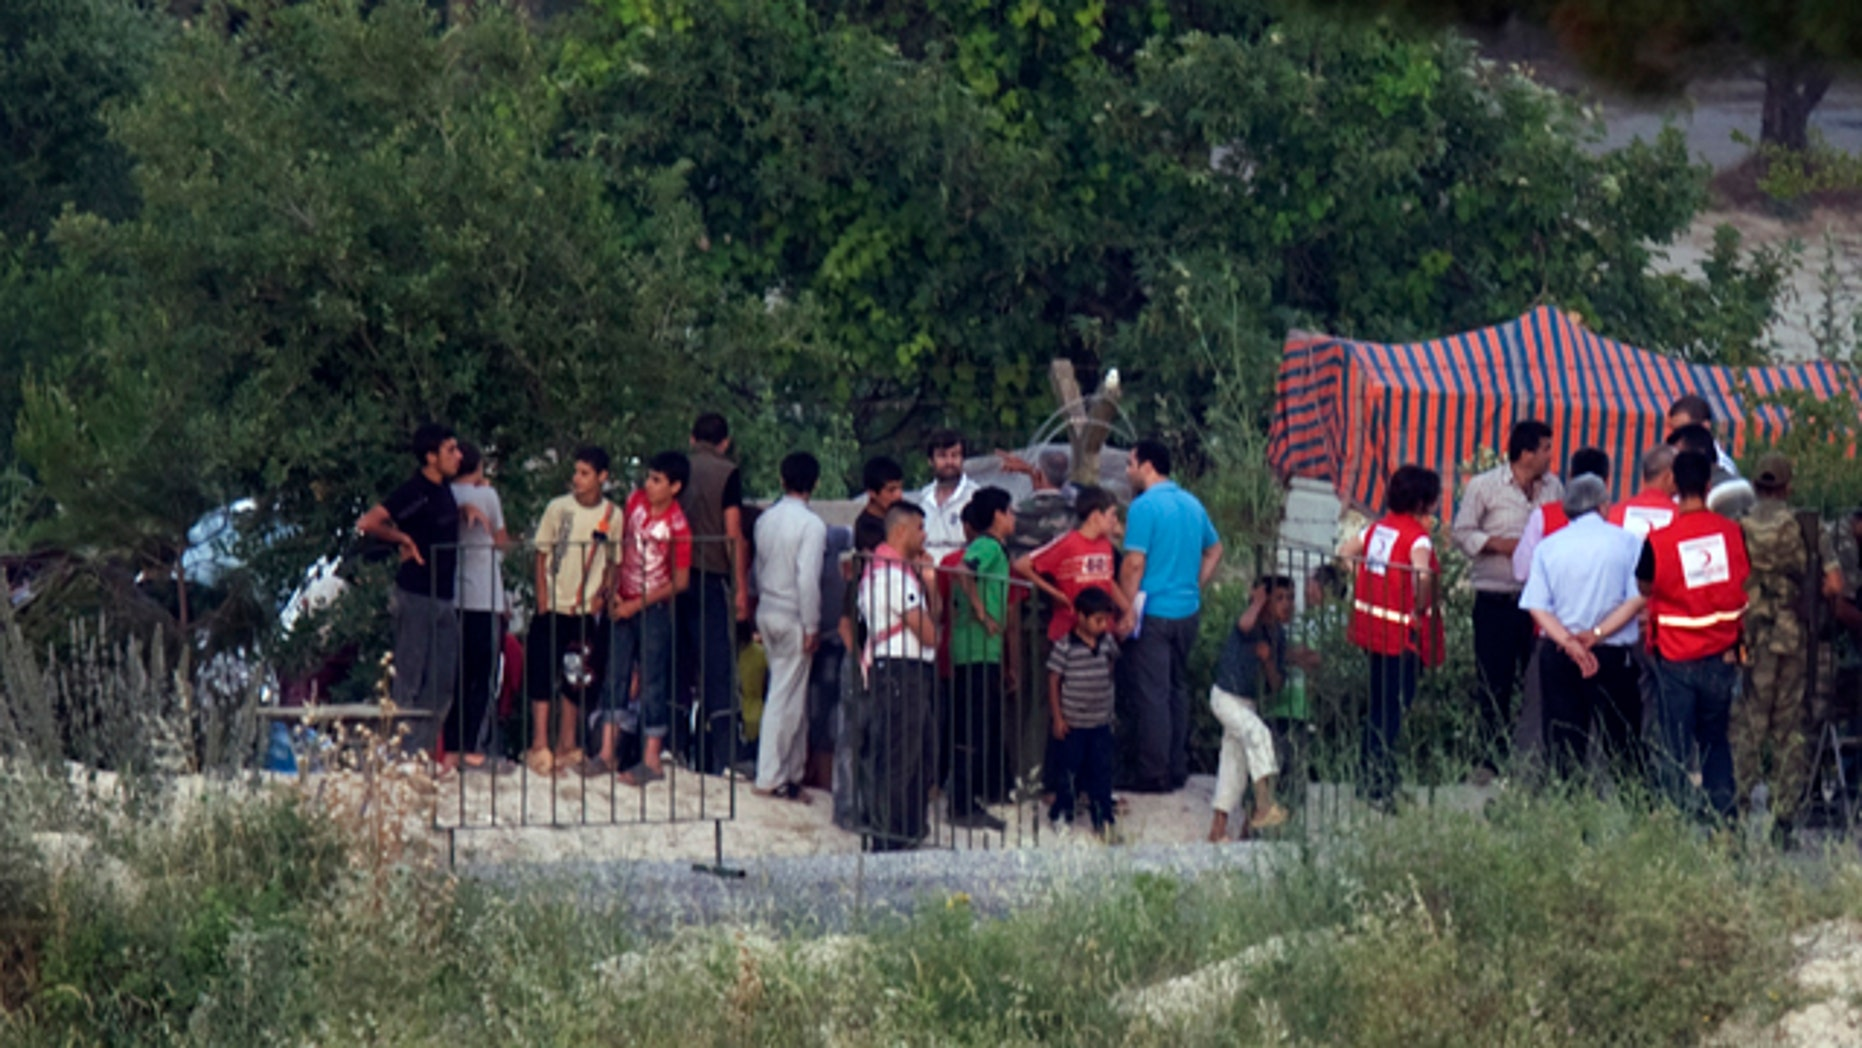 June 22: Officials of Turkey's Red Cresdent distribute free food to Syrians waiting in Syria alongside Turkey-Syria border near the Turkish village of Guvecci in Hatay province, Turkey.